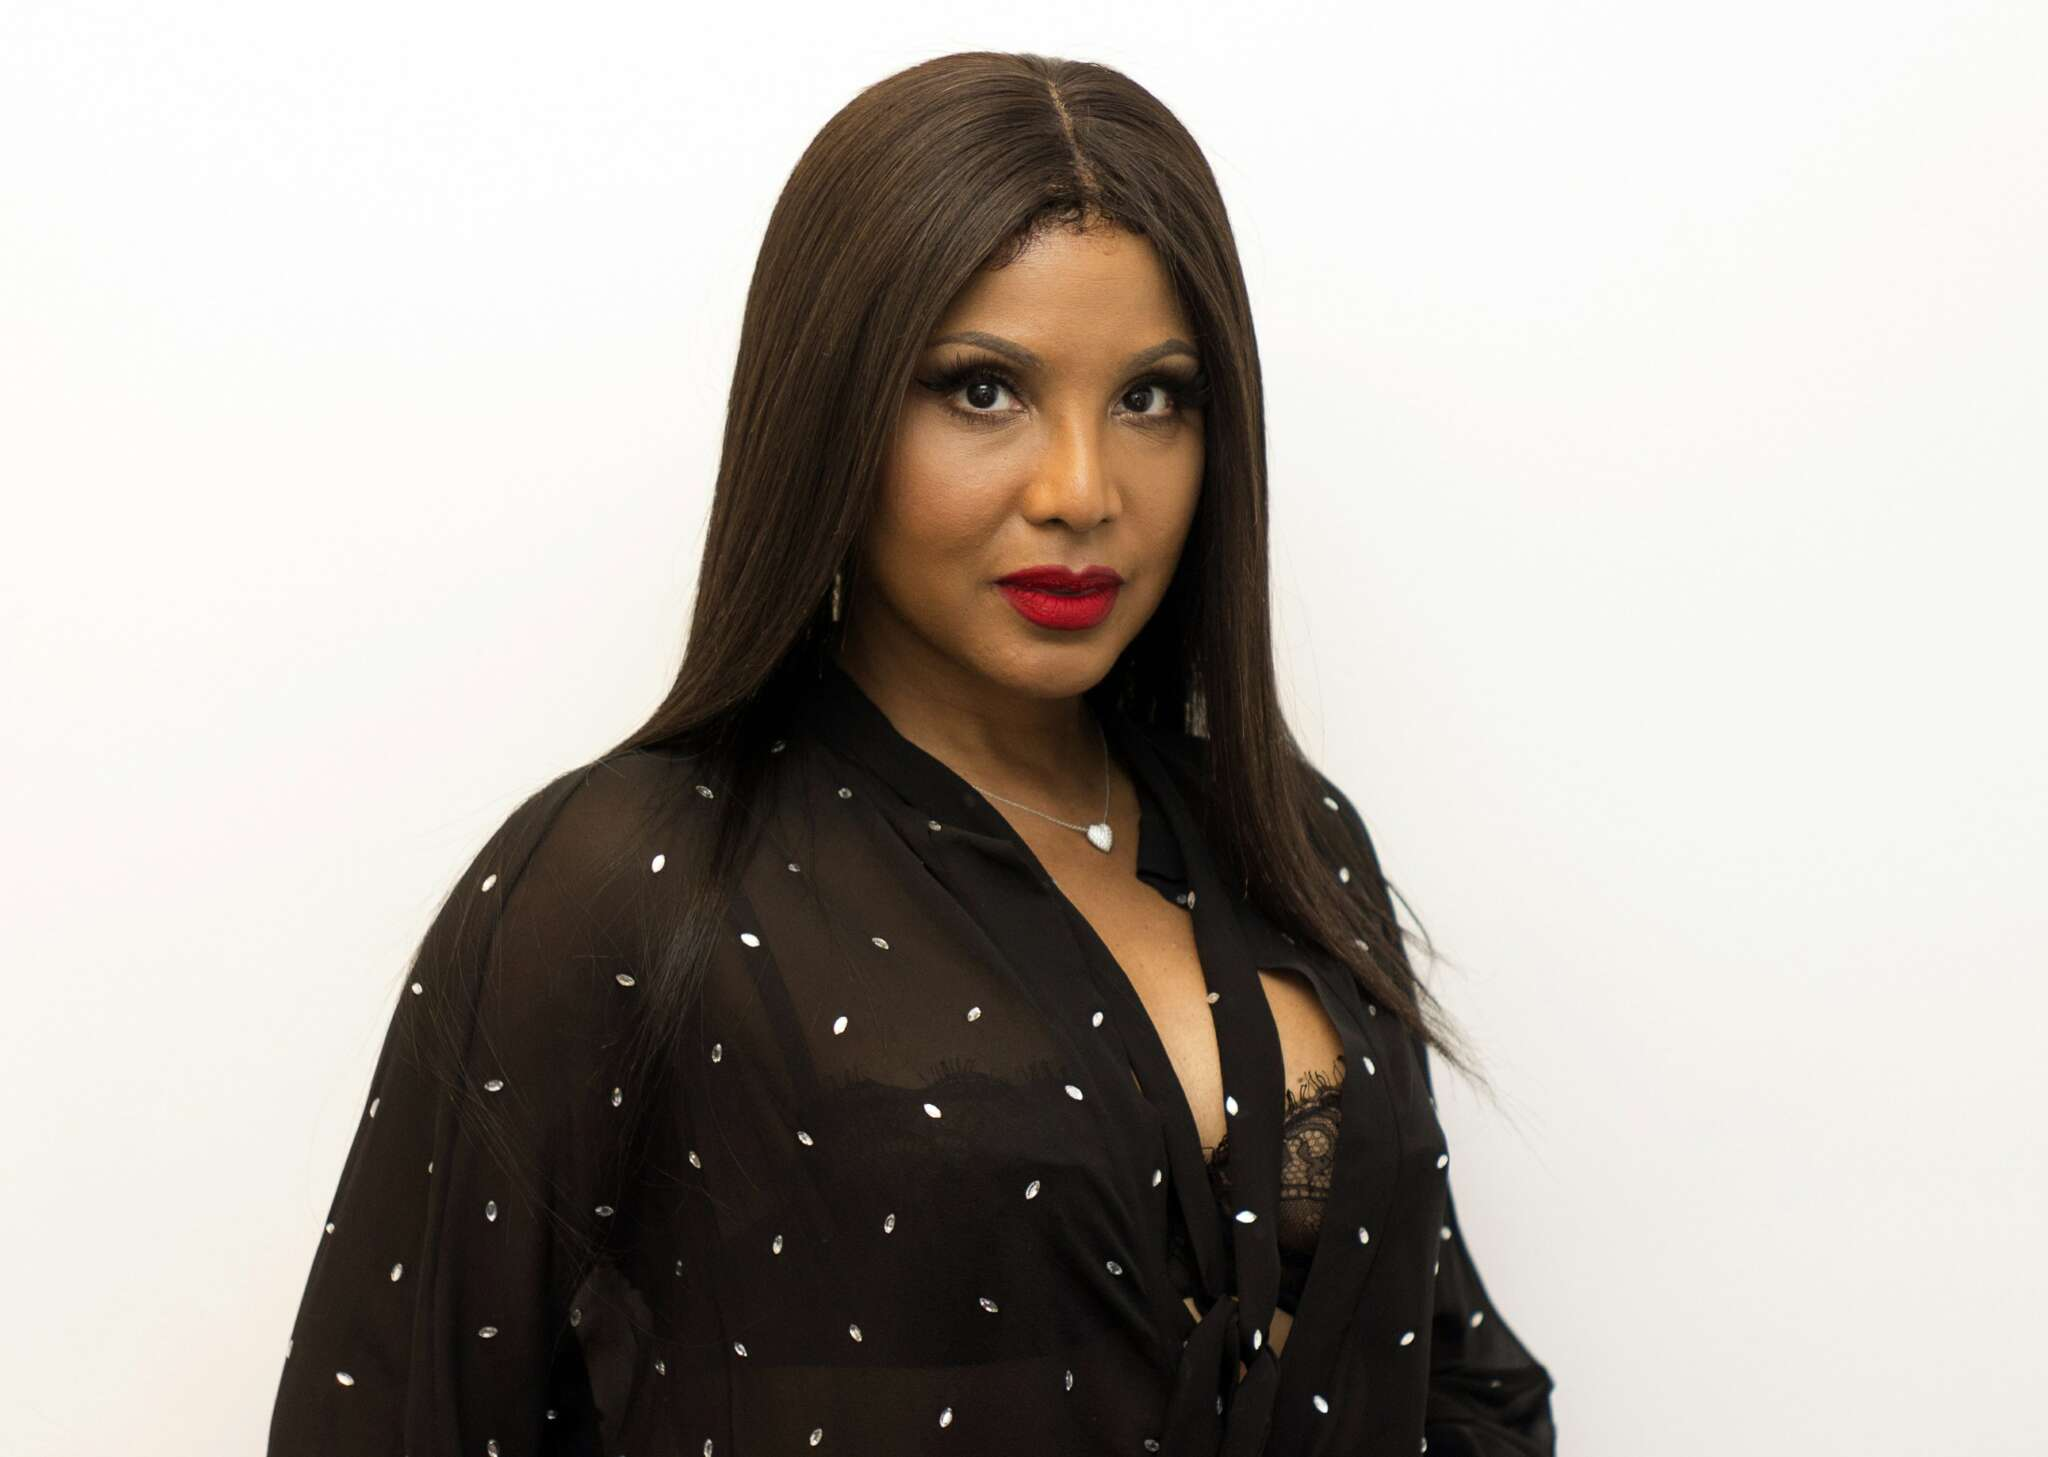 """toni-braxton-supports-viola-davis-check-out-the-clip-she-shared"""